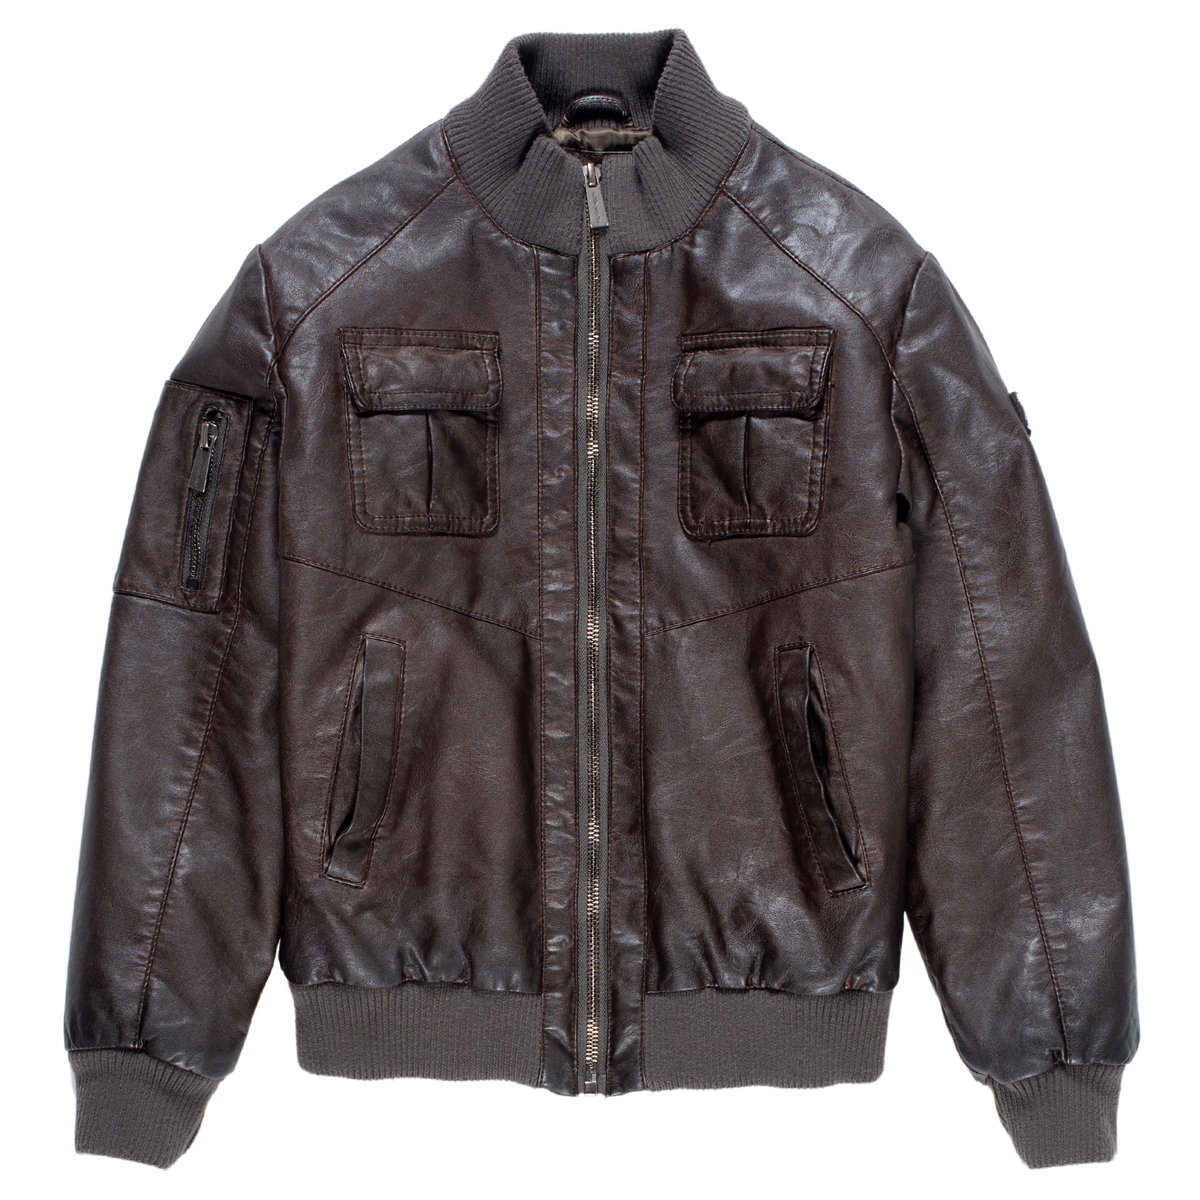 Boys Leather Bomber Jacket Aston Martin Jackets Coats